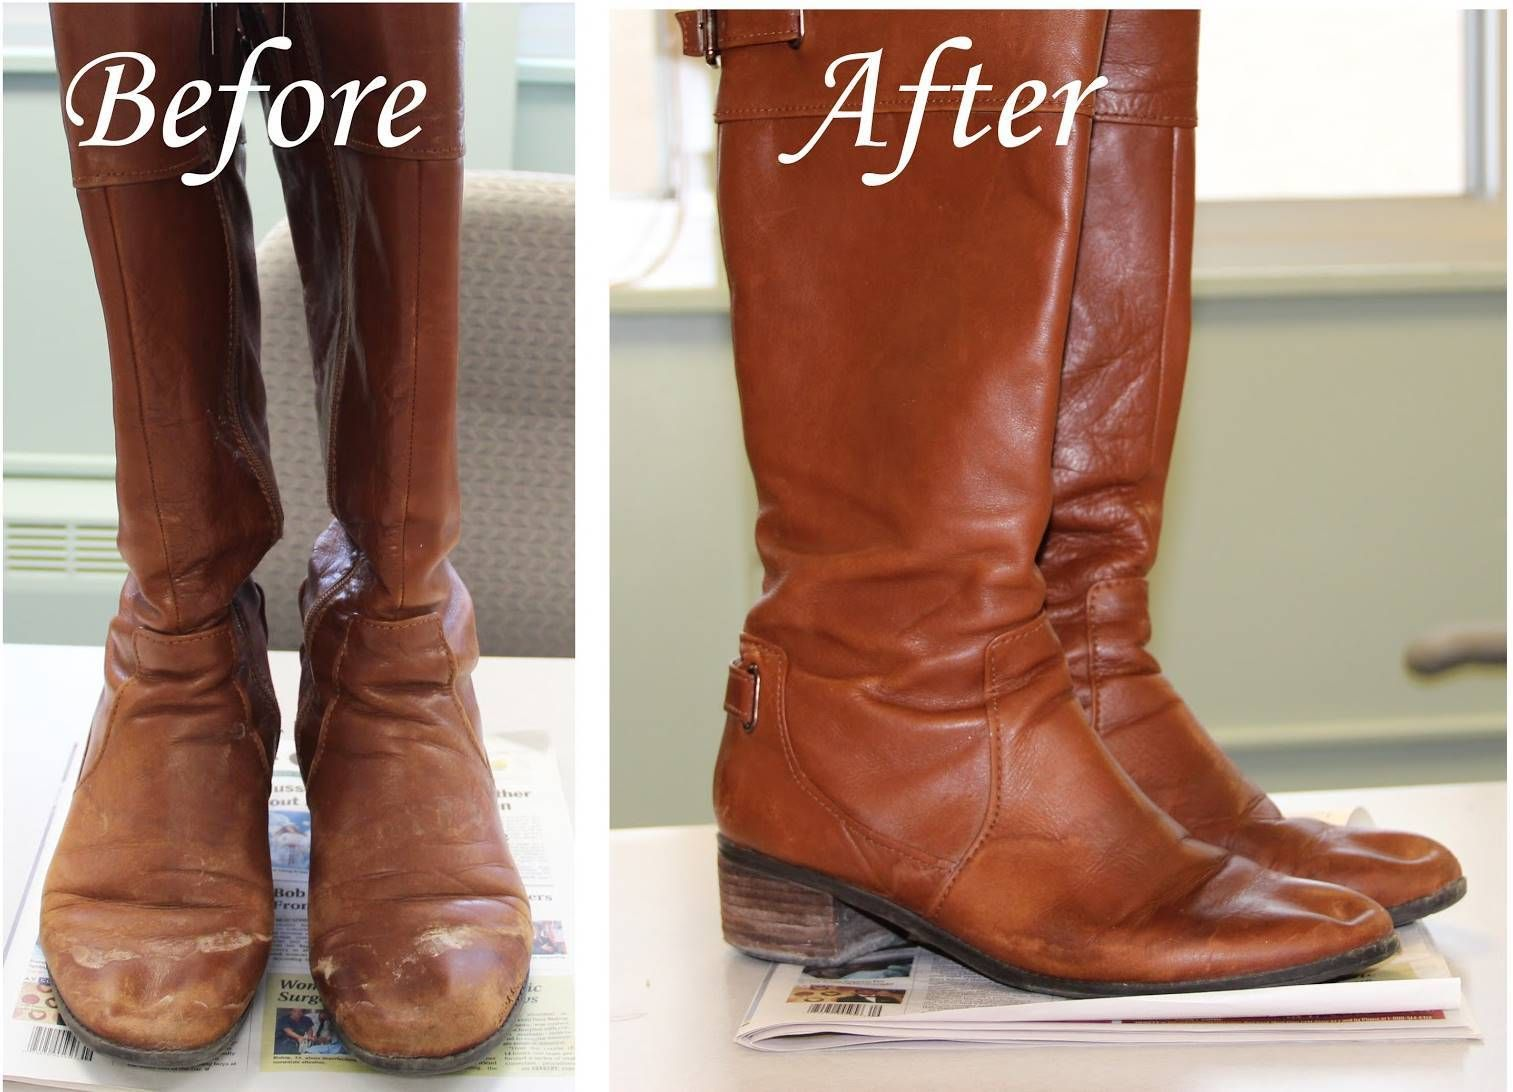 35 Useful Clothing Hacks Every Woman Should Know How To Remove Salt Stains From Leather Boots Tips Lifehack